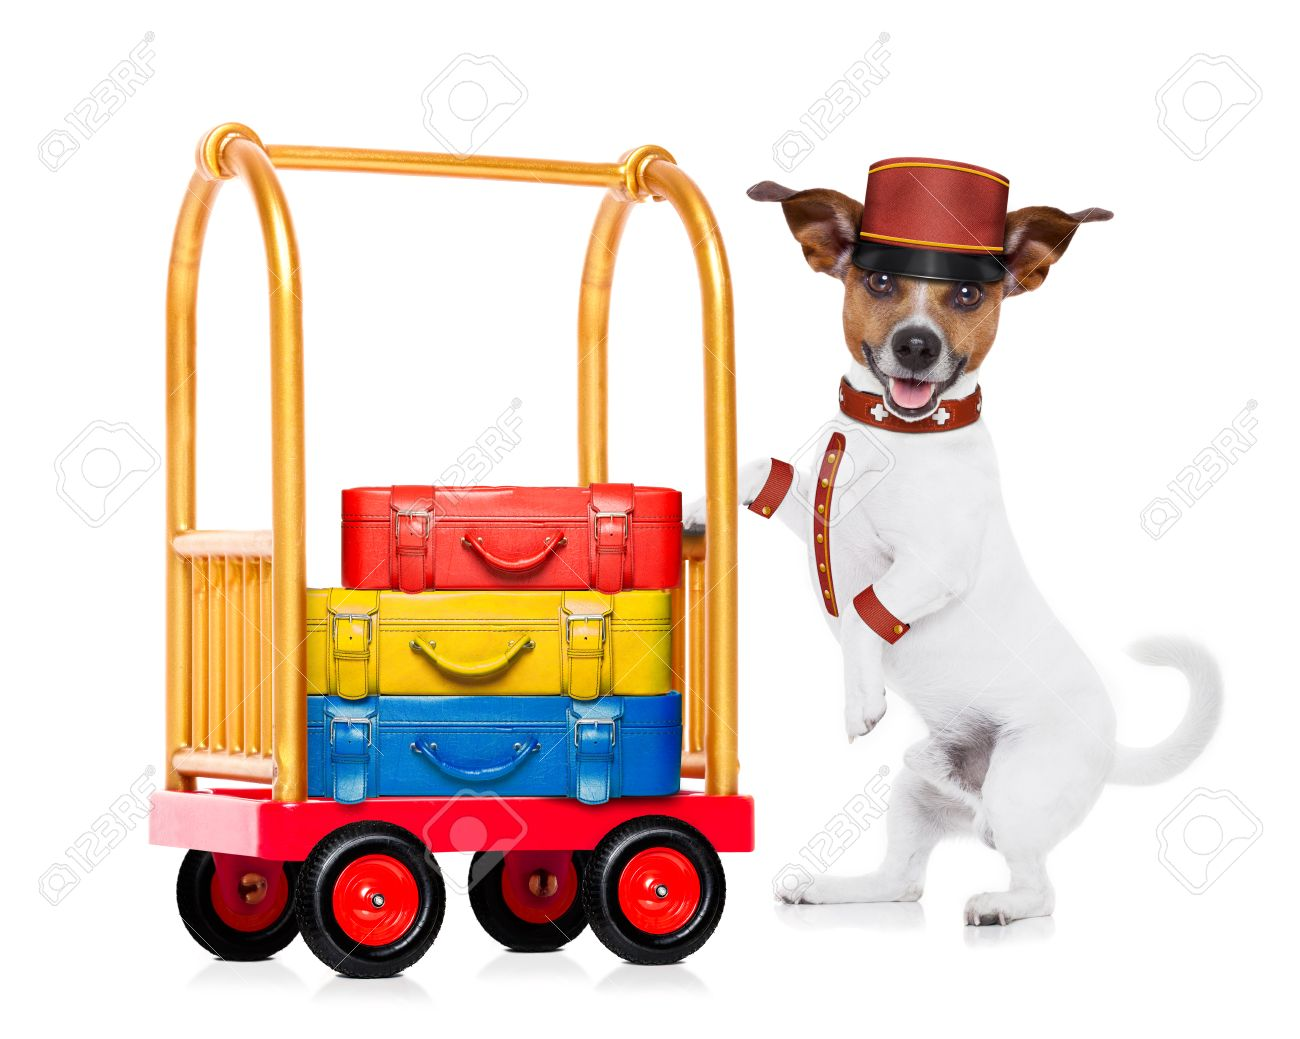 Image result for image of hotel cart for luggage